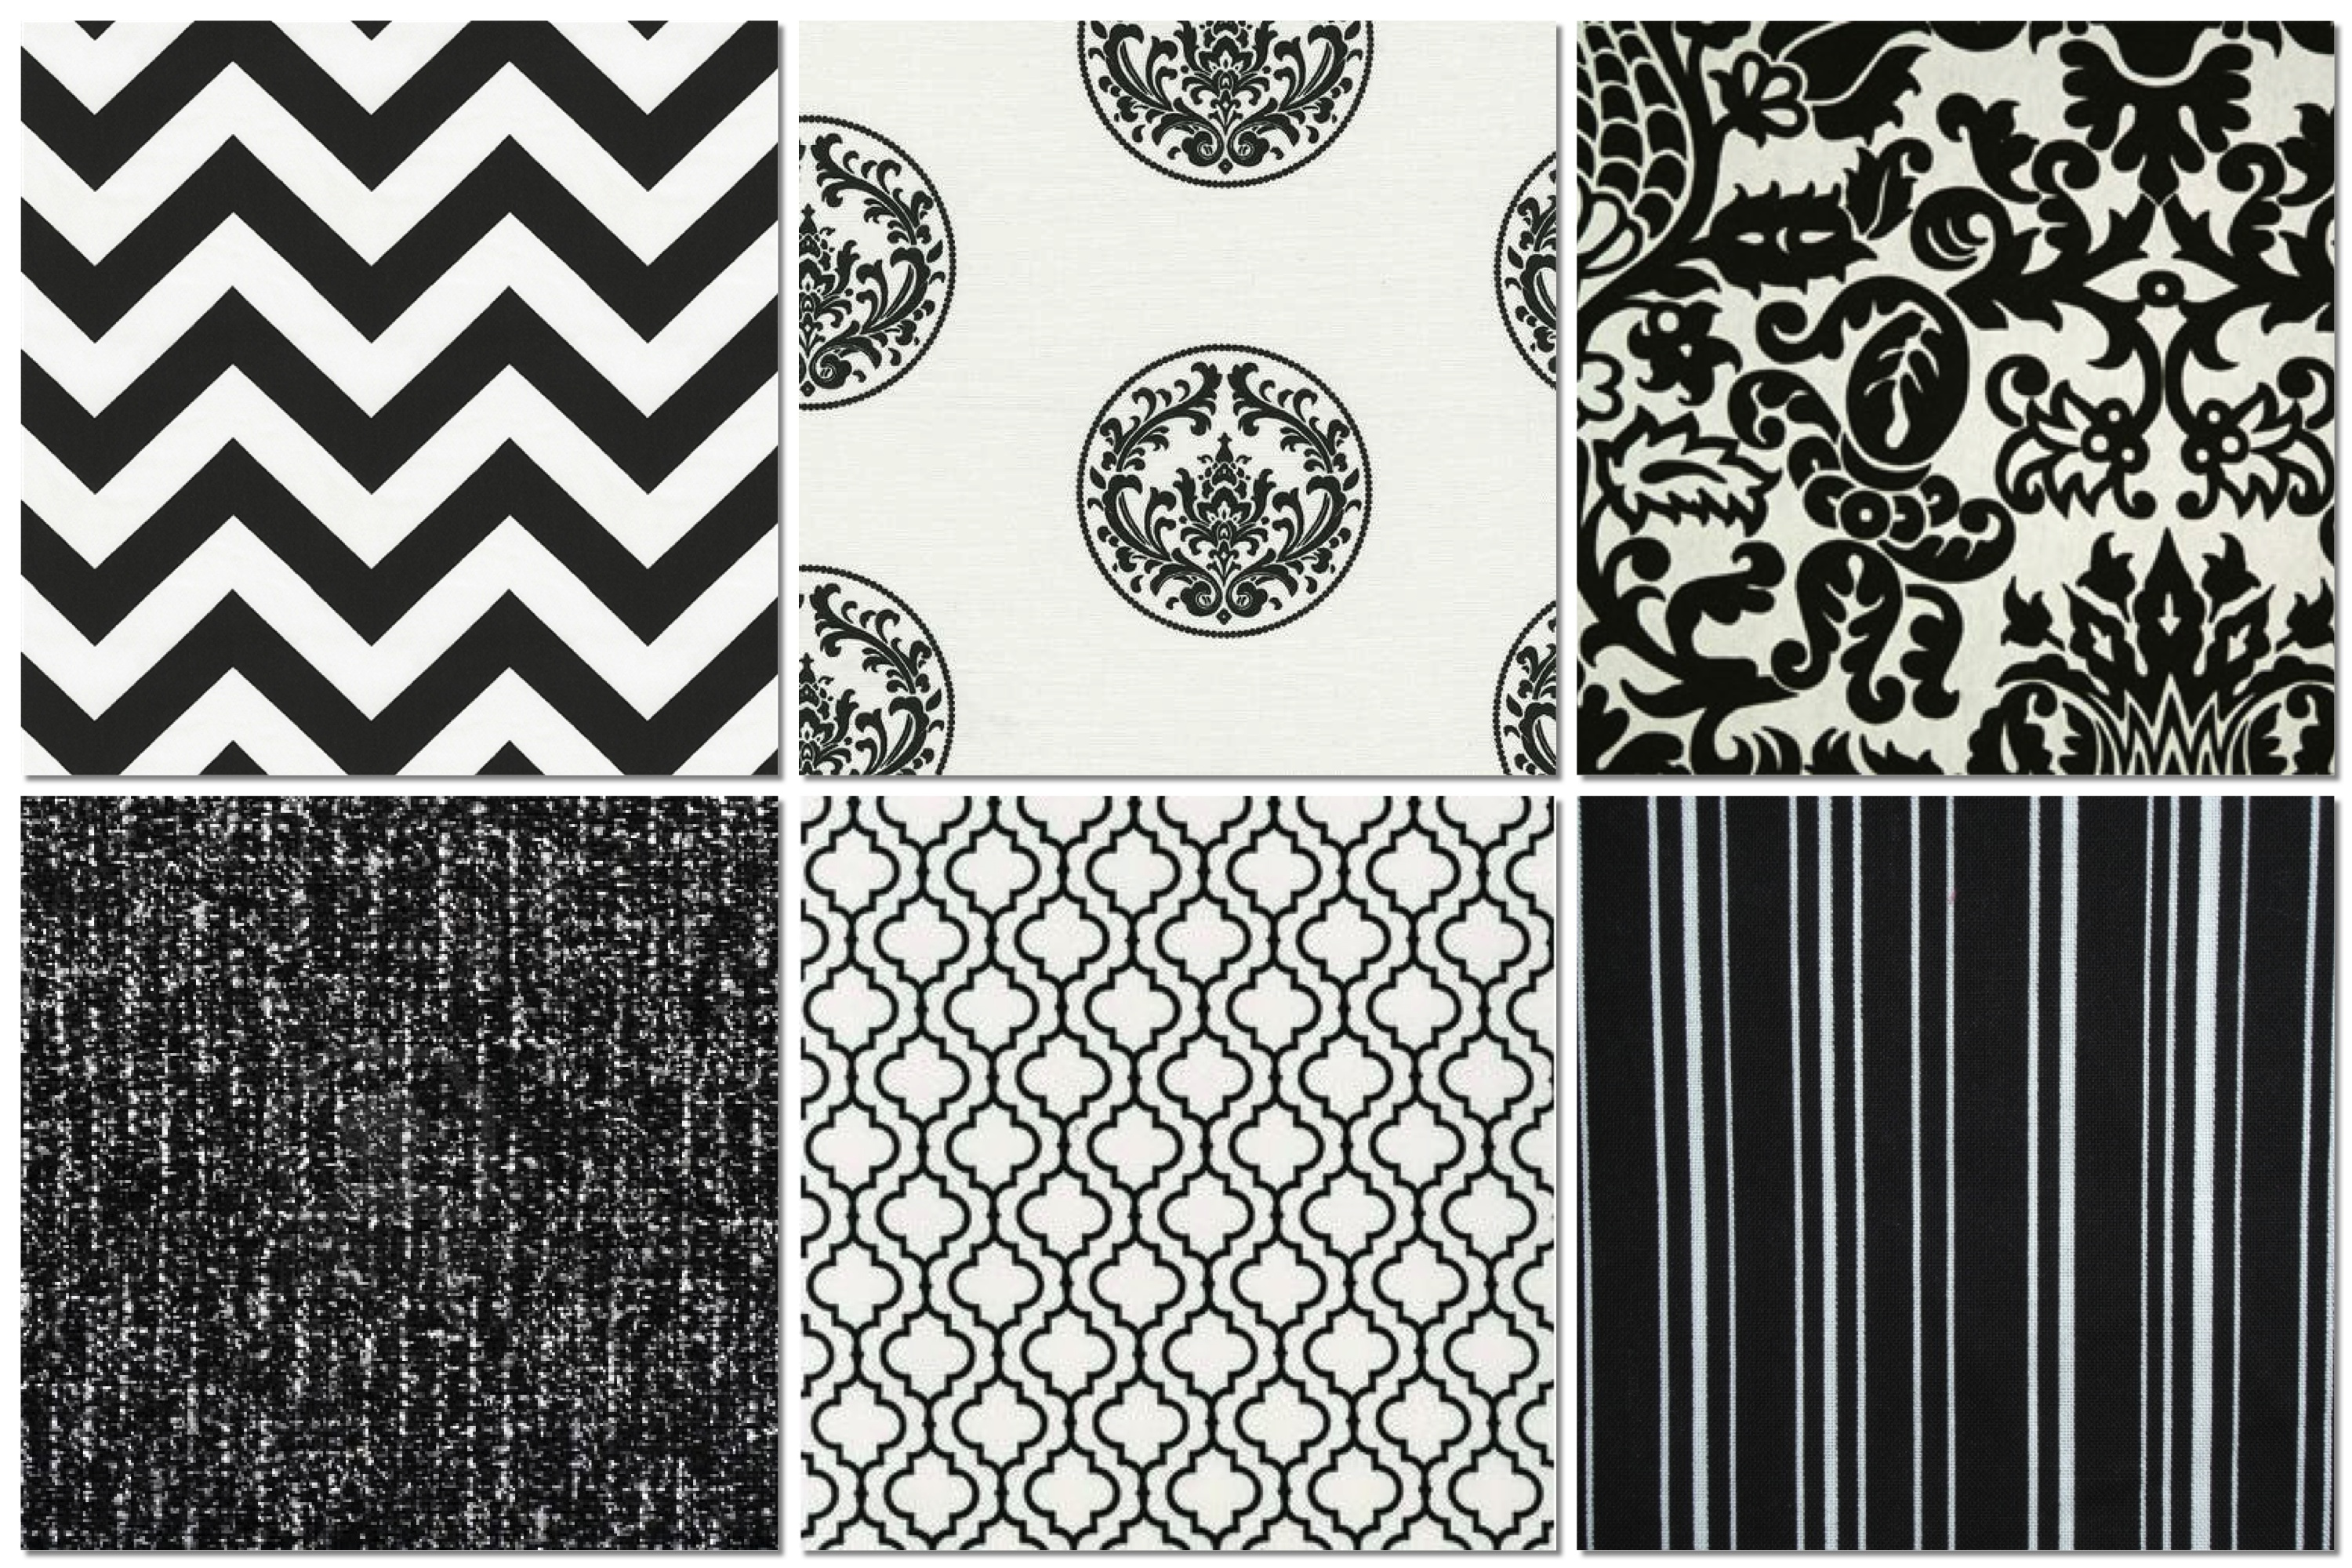 Black And White Designs Patterns Images Pictures   Becuo 3000x2000